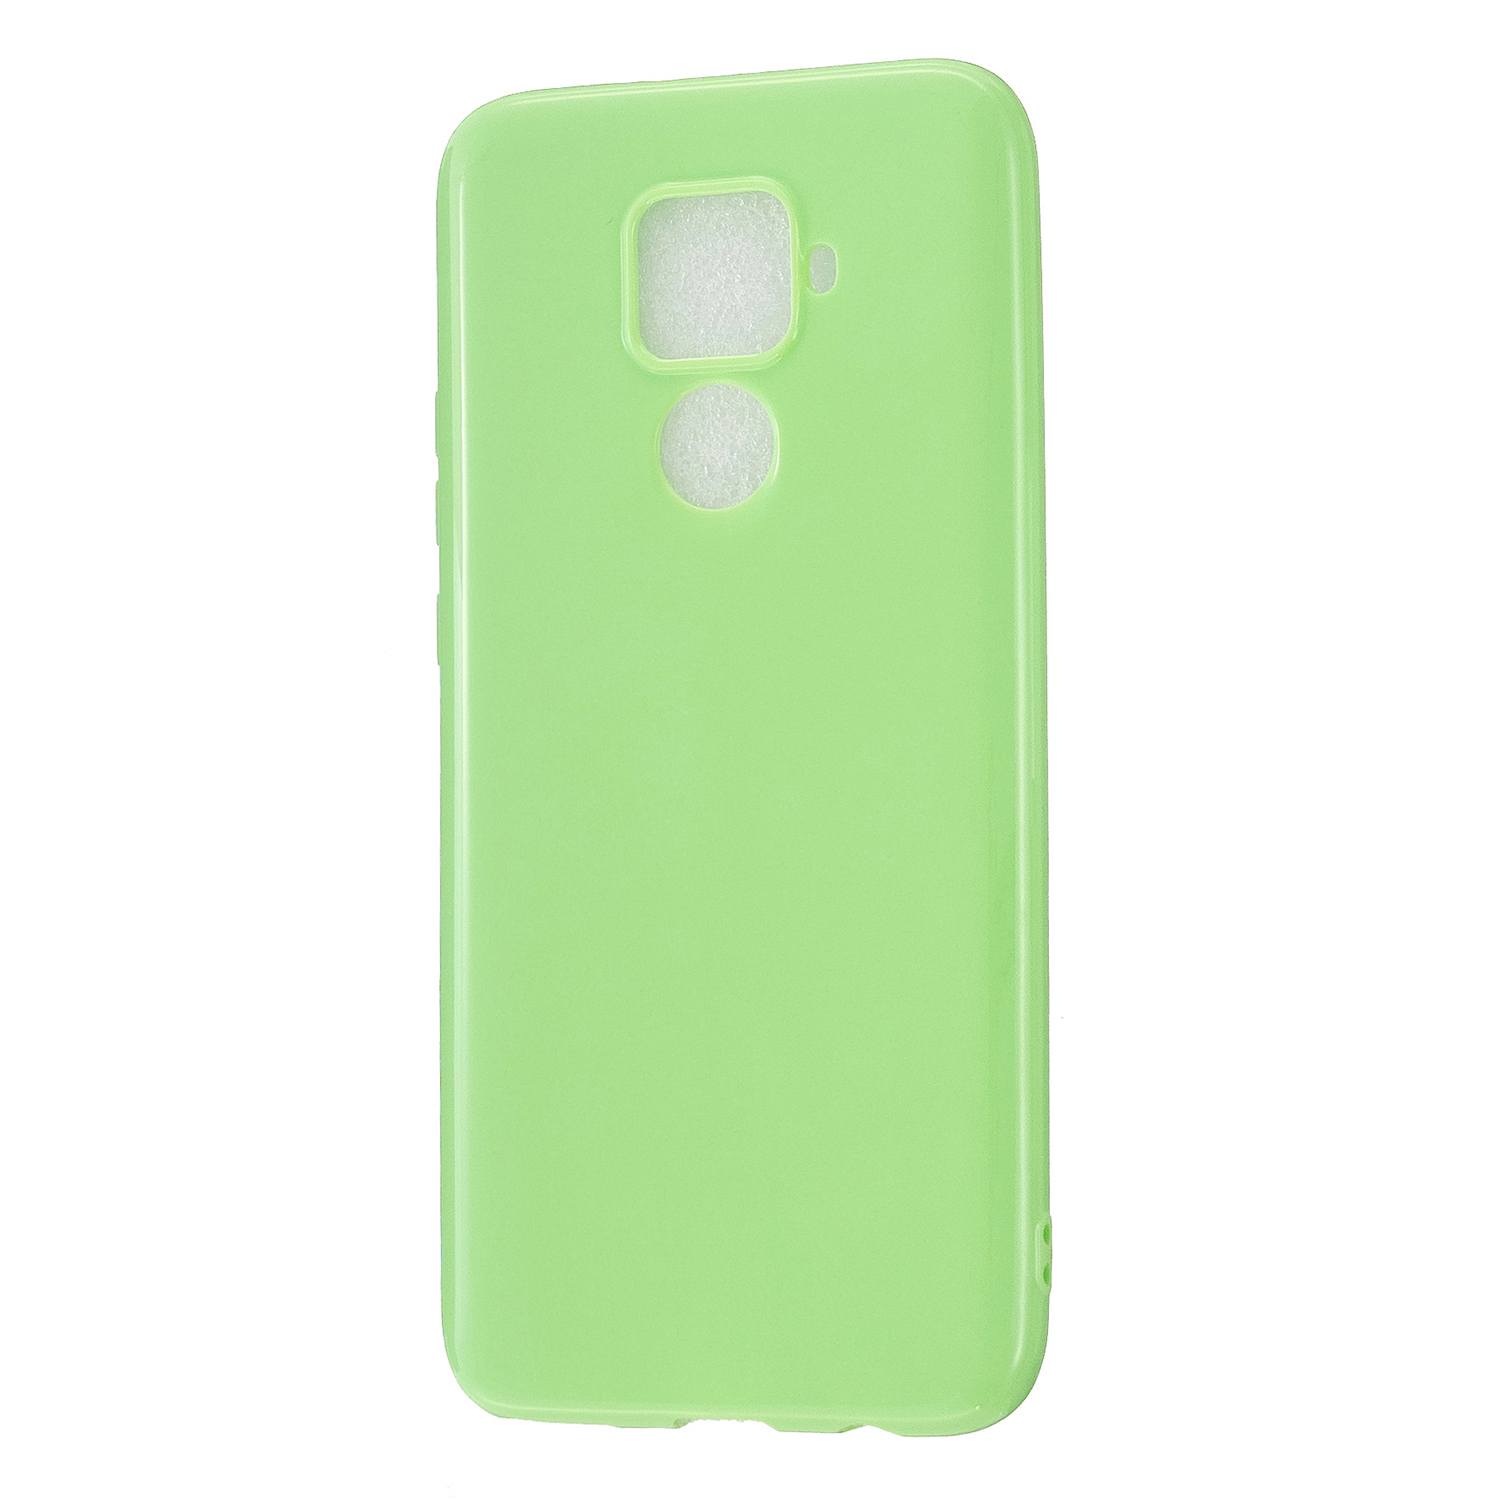 For HUAWEI Mate 30/30 Lite/30 Pro Cellphone Case Simple Profile Soft TPU Shock-Absorption Phone Cover Fluorescent green